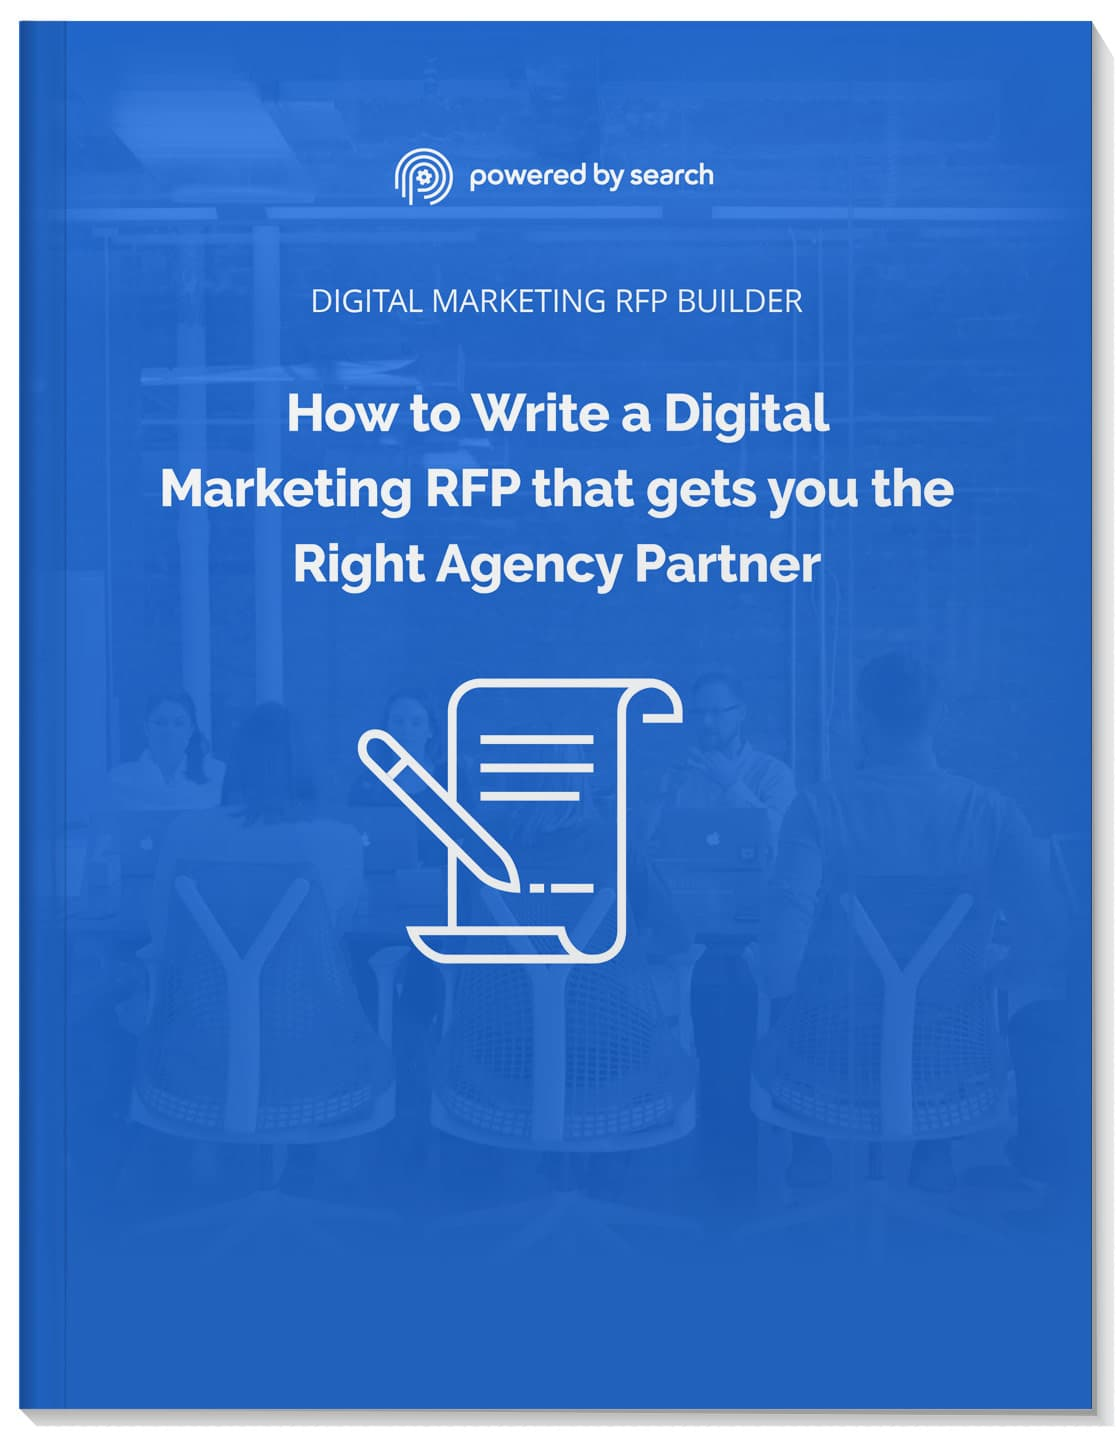 Digital Marketing RFP Template to Hire a Digital Agency (2017)